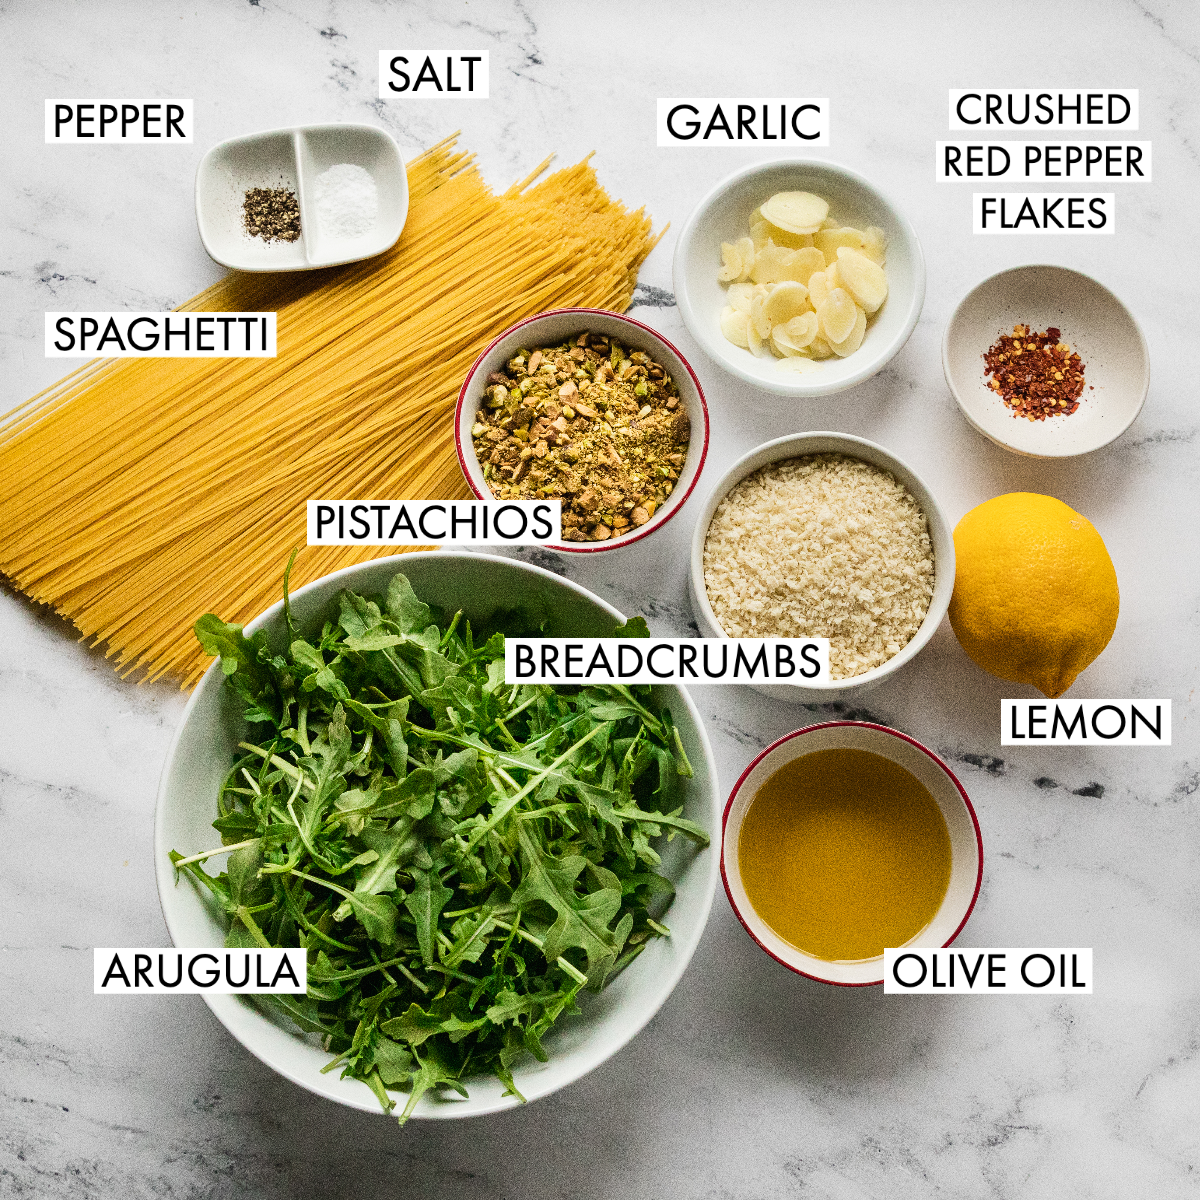 image of ingredients for angel hair noodles with arugula and pistachio